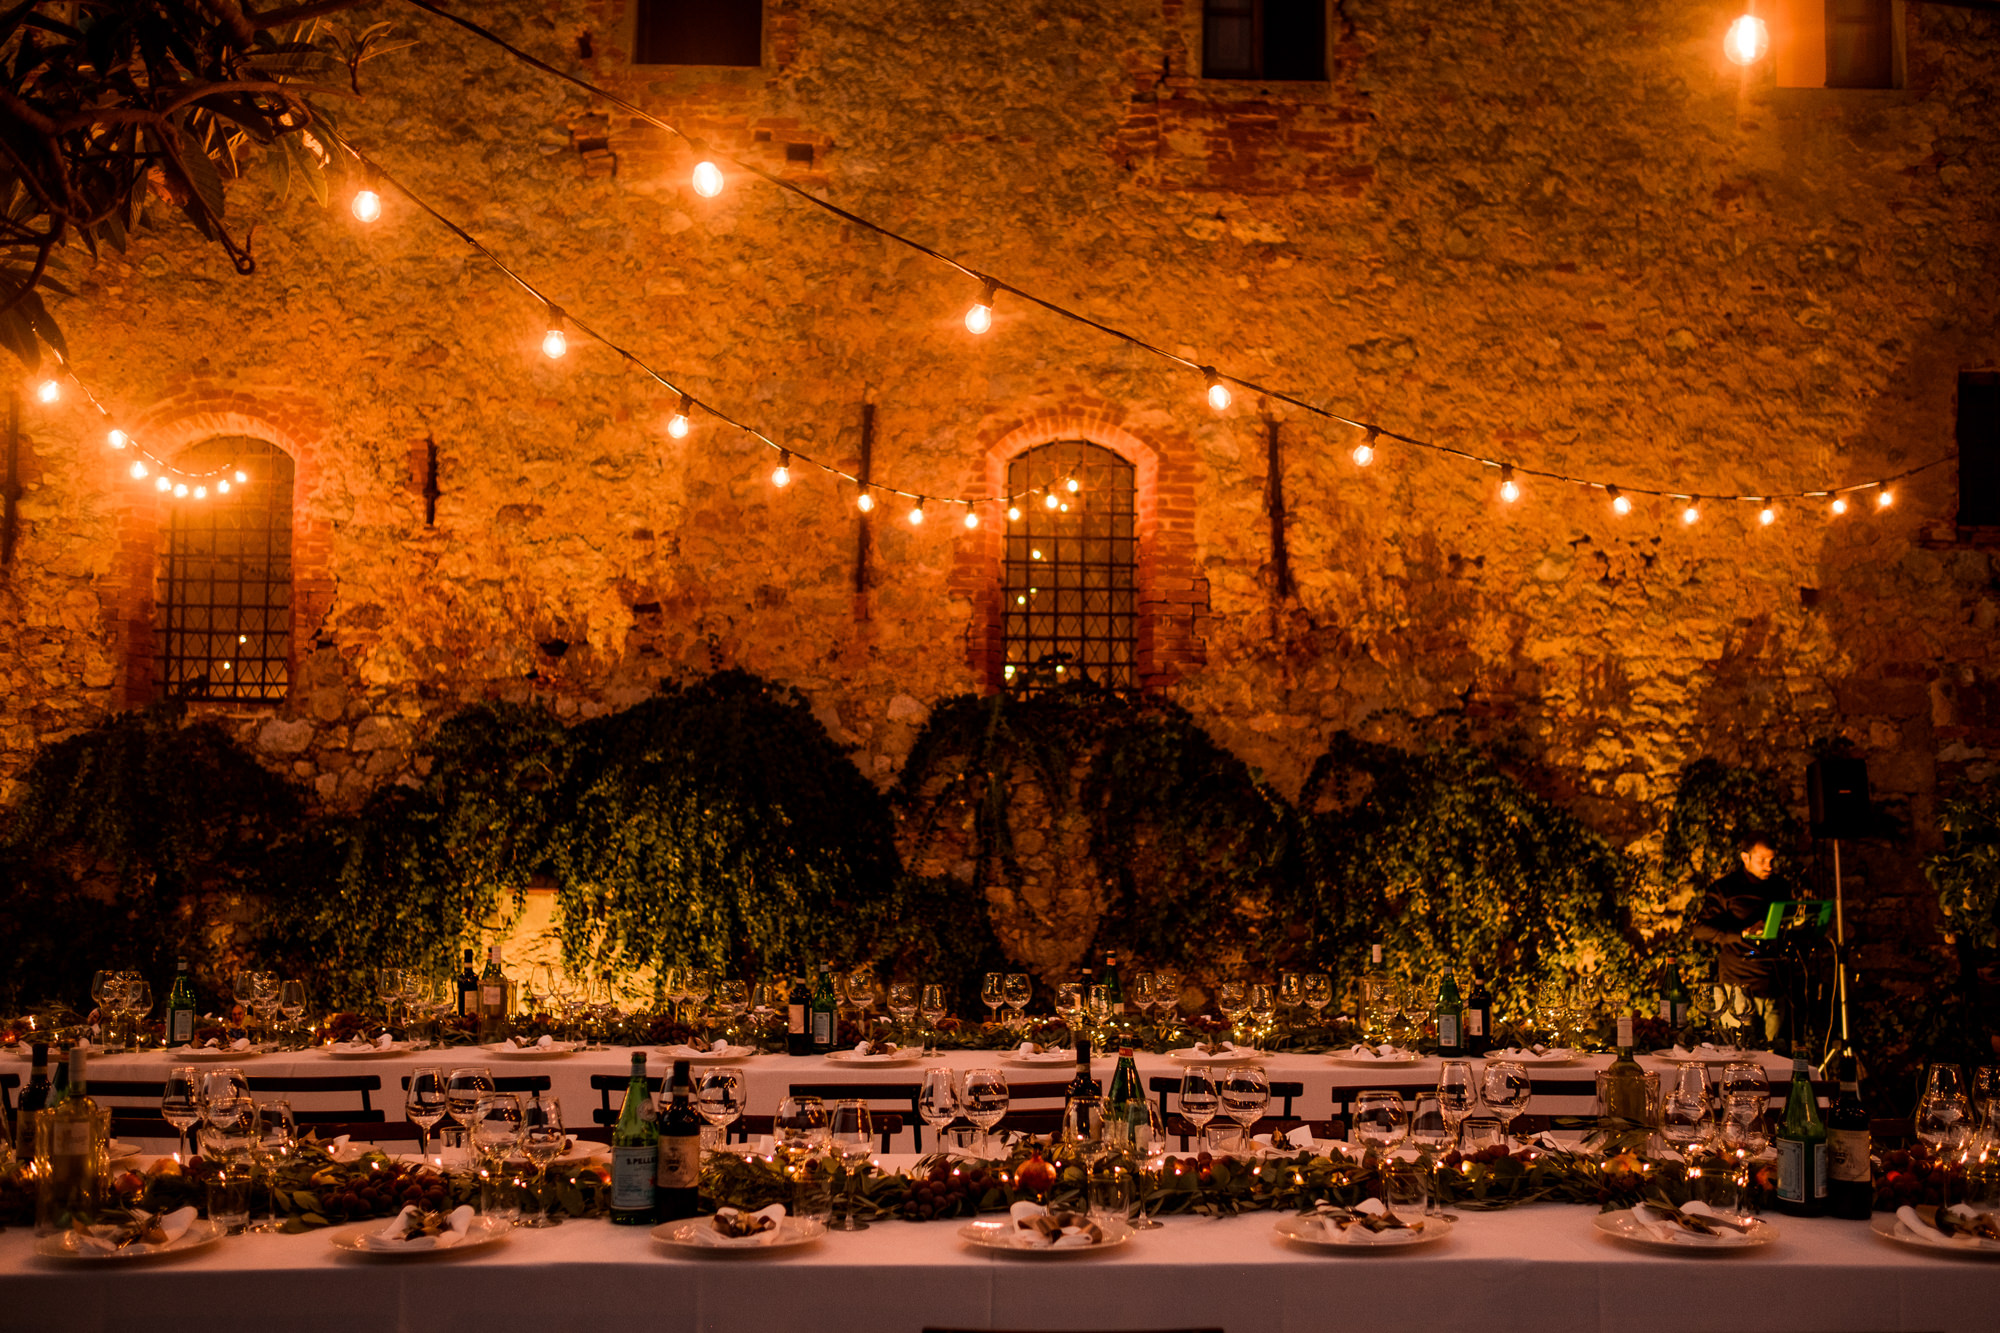 Low light reception tables and decor photo by Nordica Photography